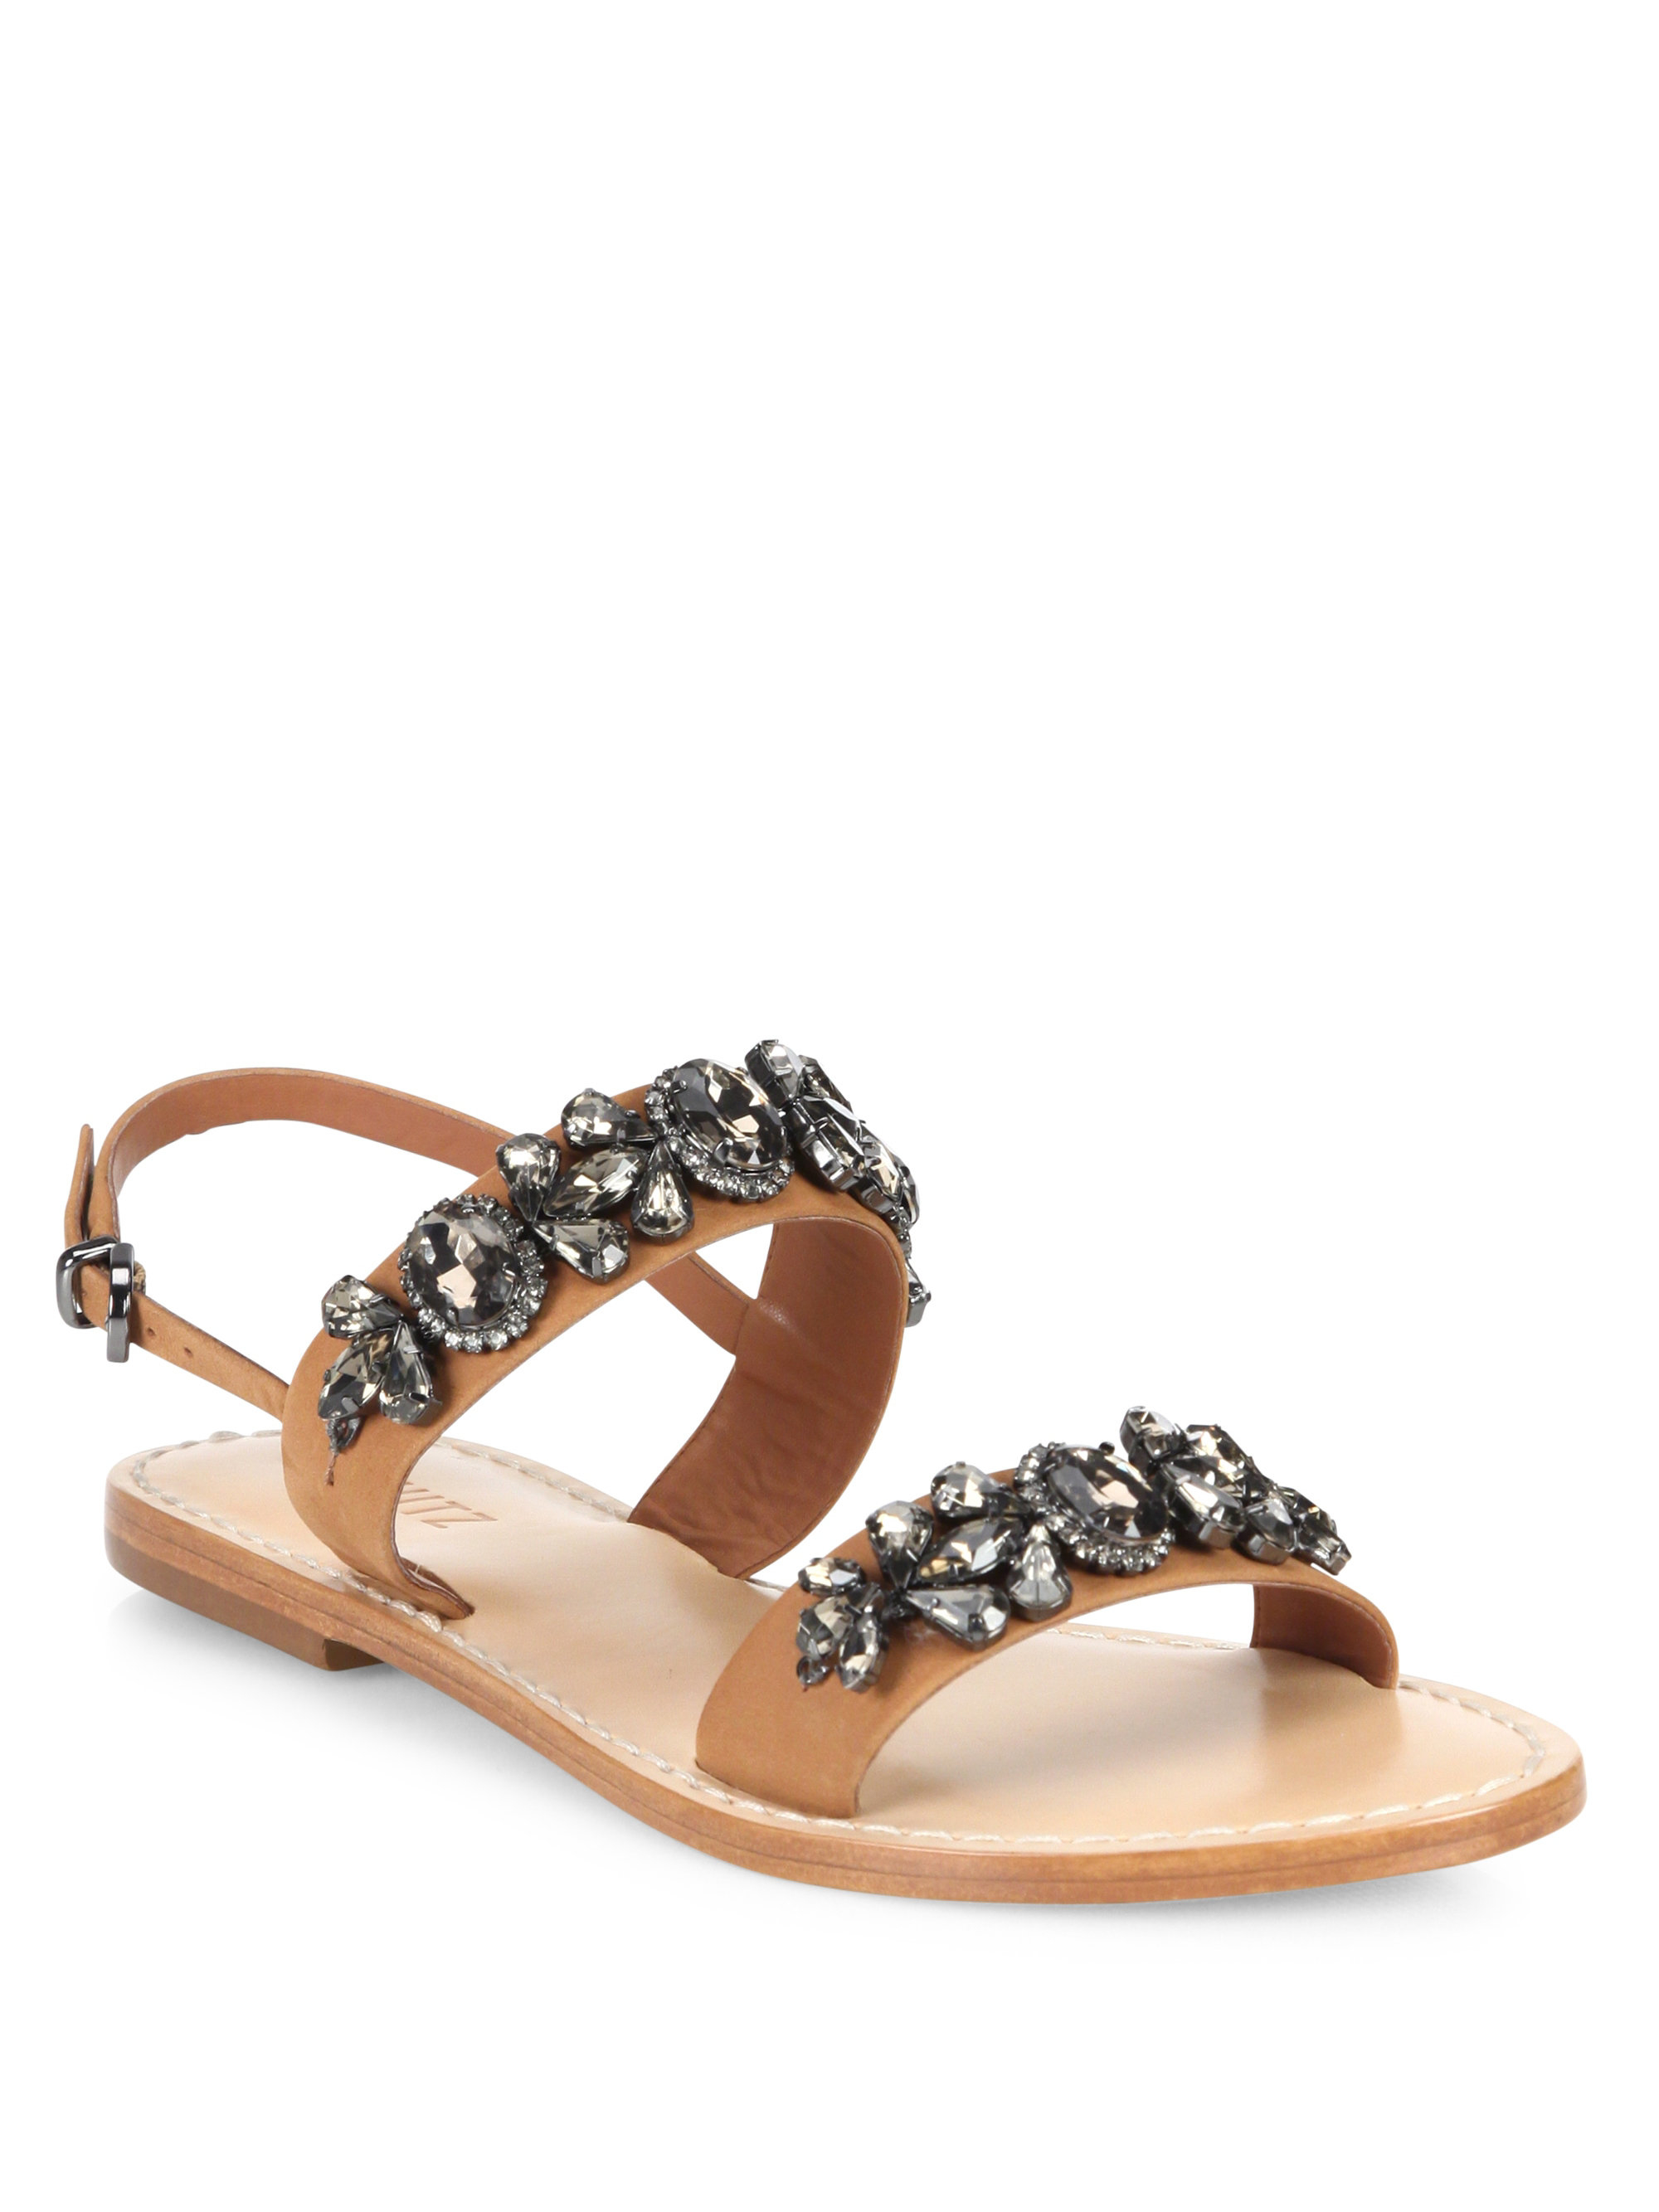 0ef8de325 Lyst - Schutz Mulada Jeweled Leather Band Sandals in Brown